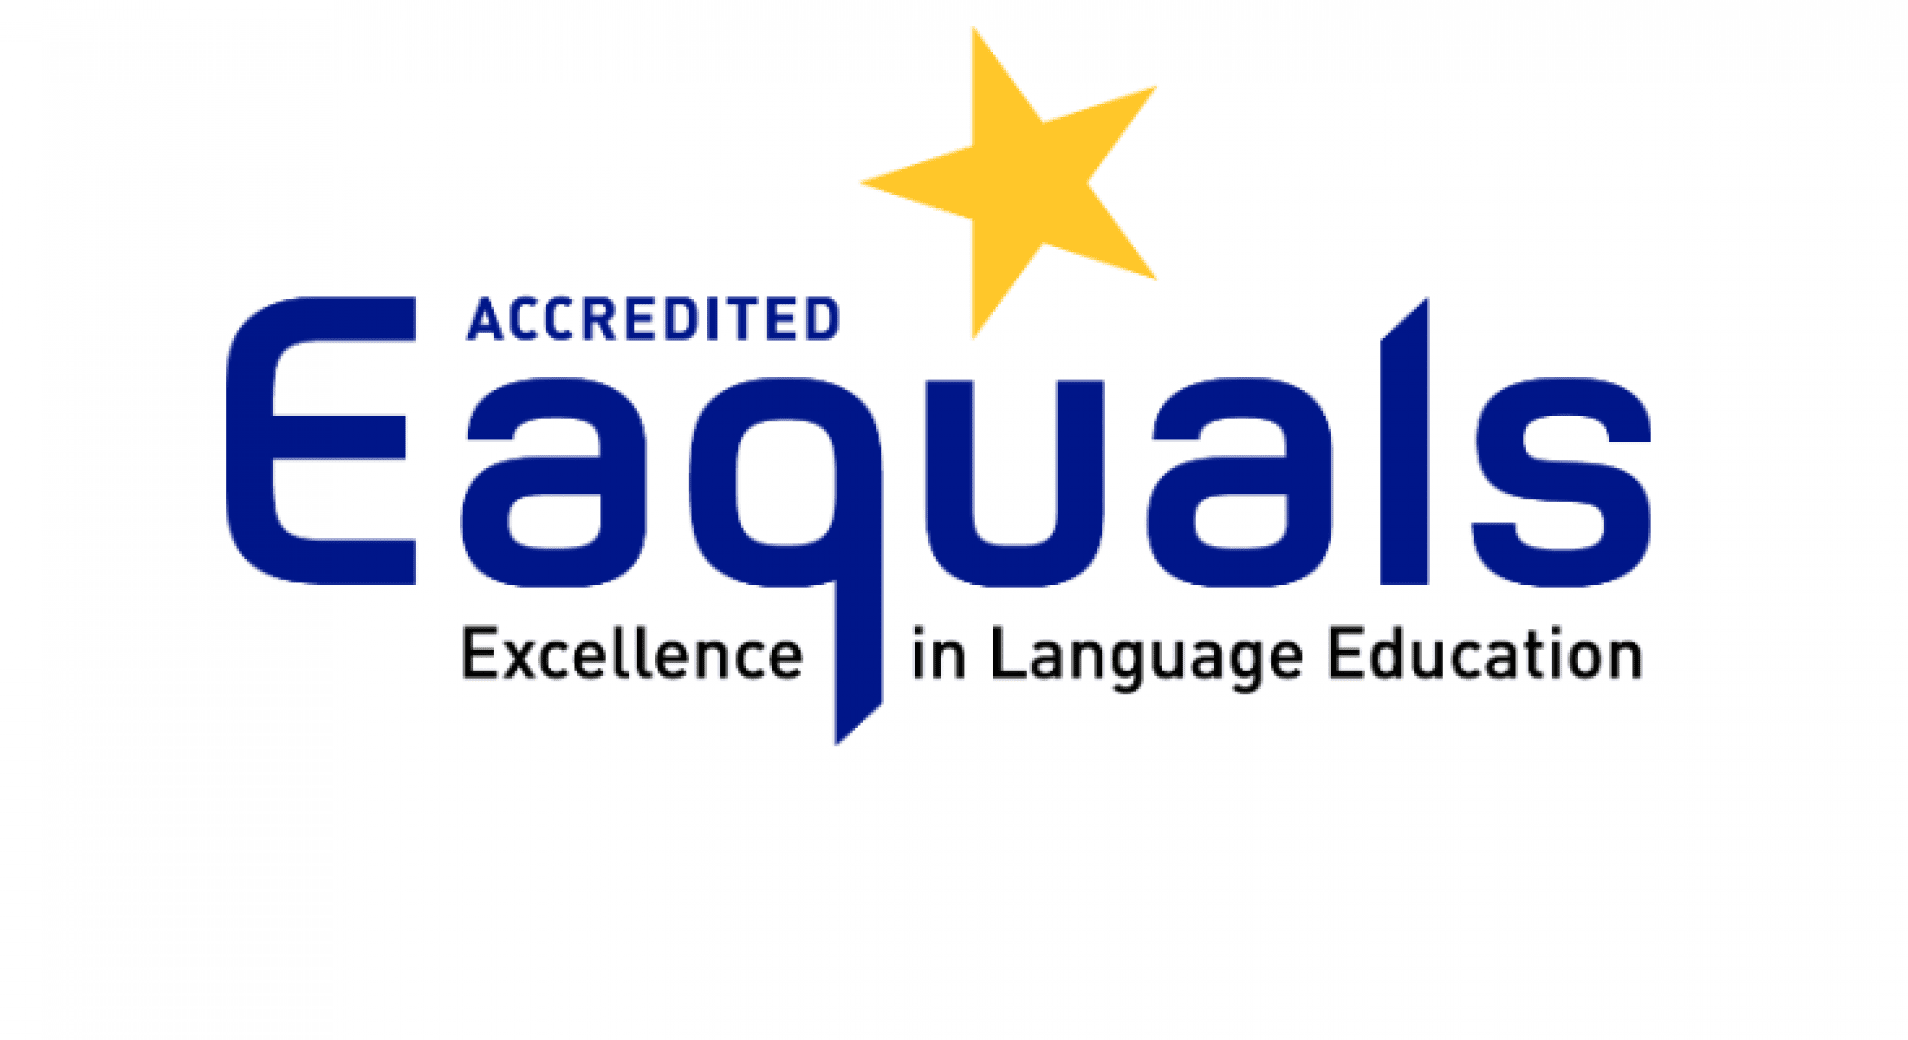 Evaluation and Accreditation of Quality Language Services (Eaquals)